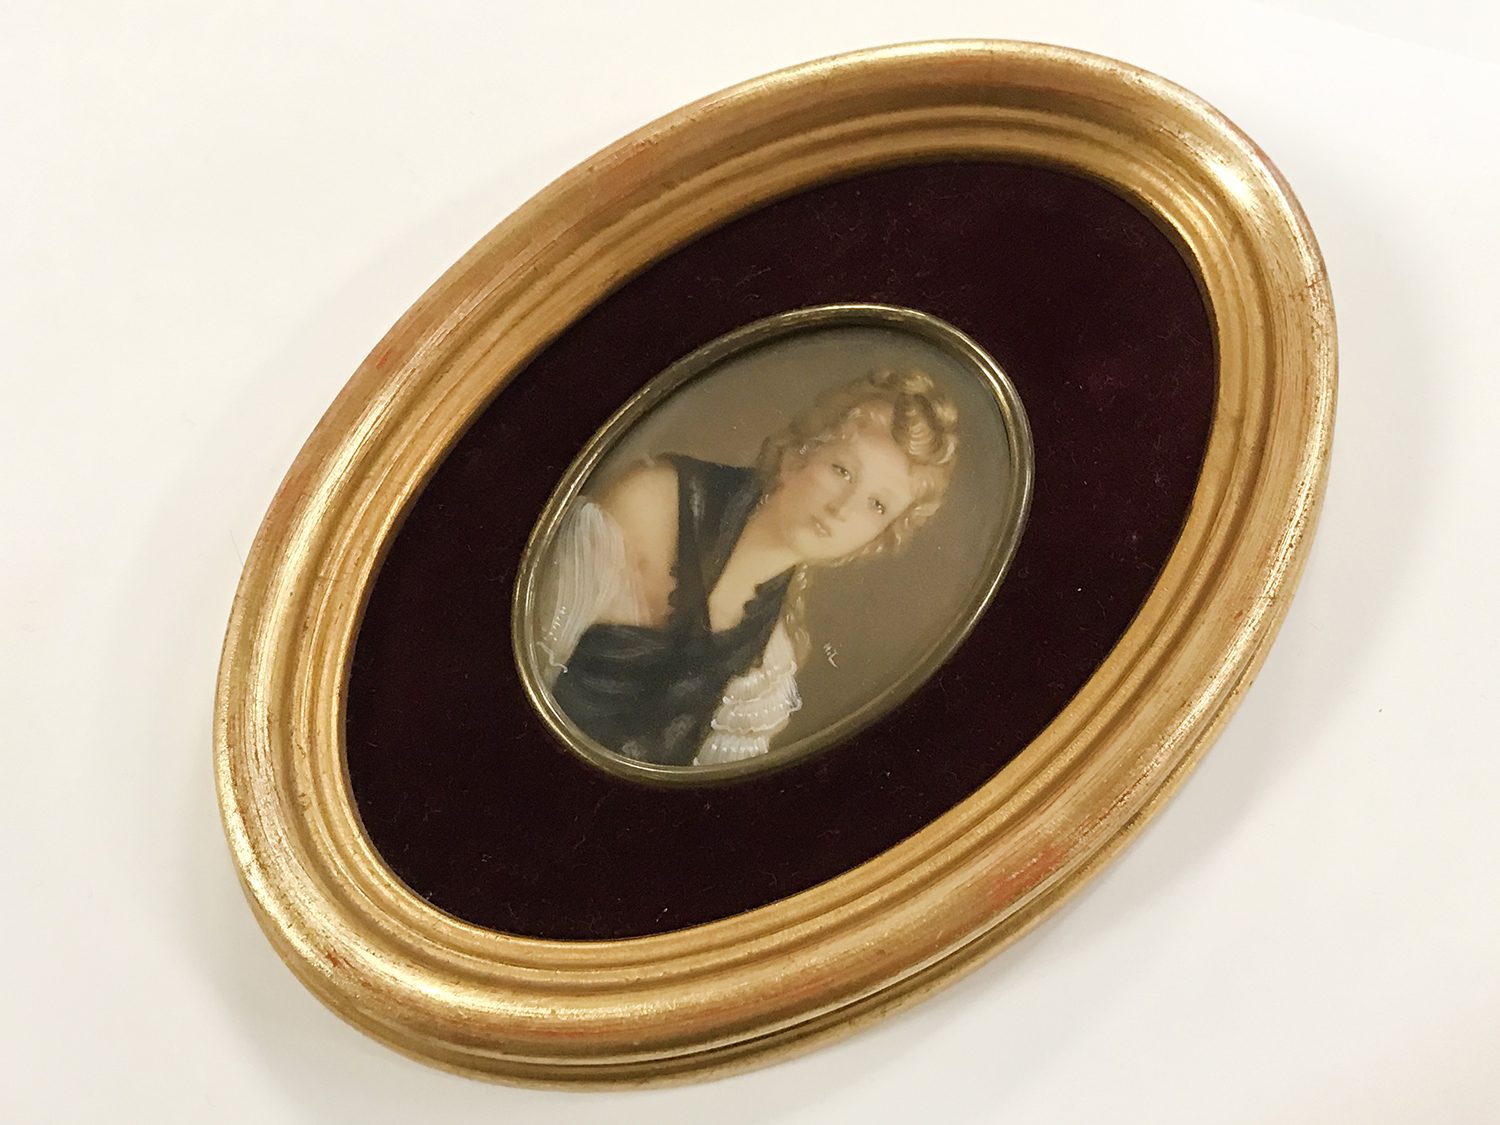 TWO FRAMED 20THC PORTRAIT MINIATURES - Image 3 of 3